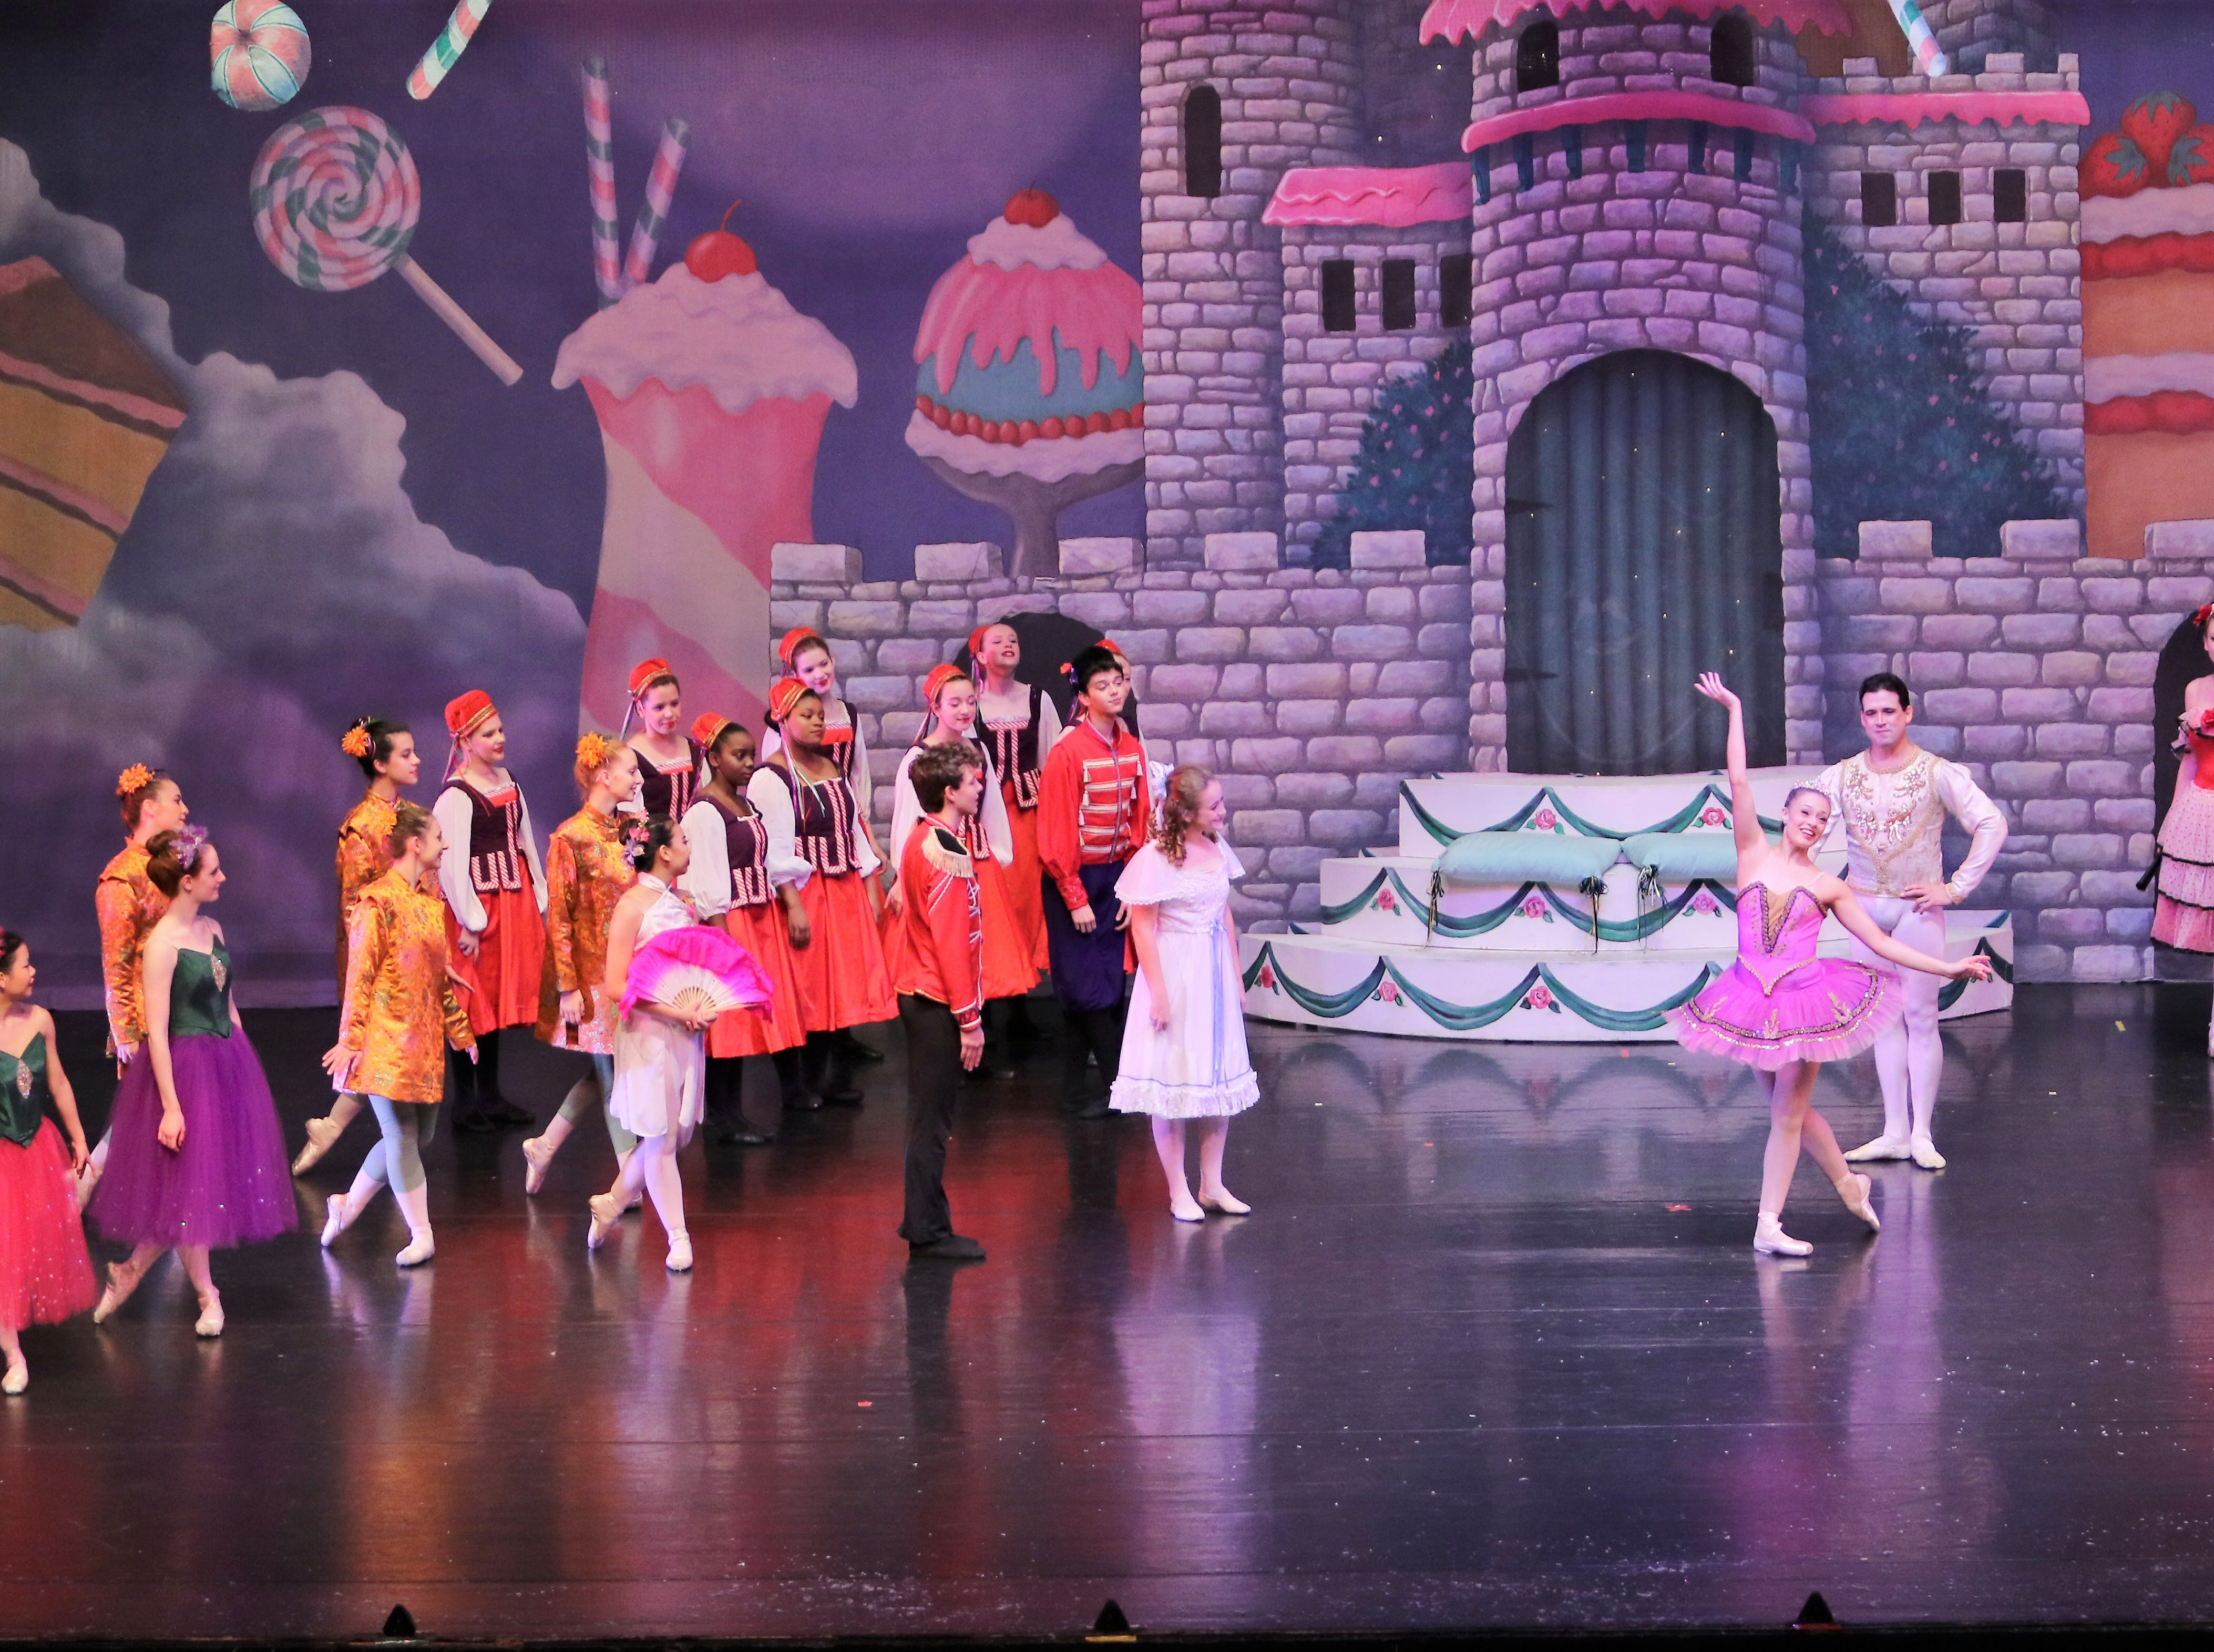 School children from across West Tennessee gathered at the Carl Perkins Civic Center on Friday morning, December 7, 2018 to see the 37th annual production of The Nutcracker presented by Ballet Arts, Inc. of Jackson.  The children are admitted to the event free as part of a program paid for by corporate and personal sponsors.